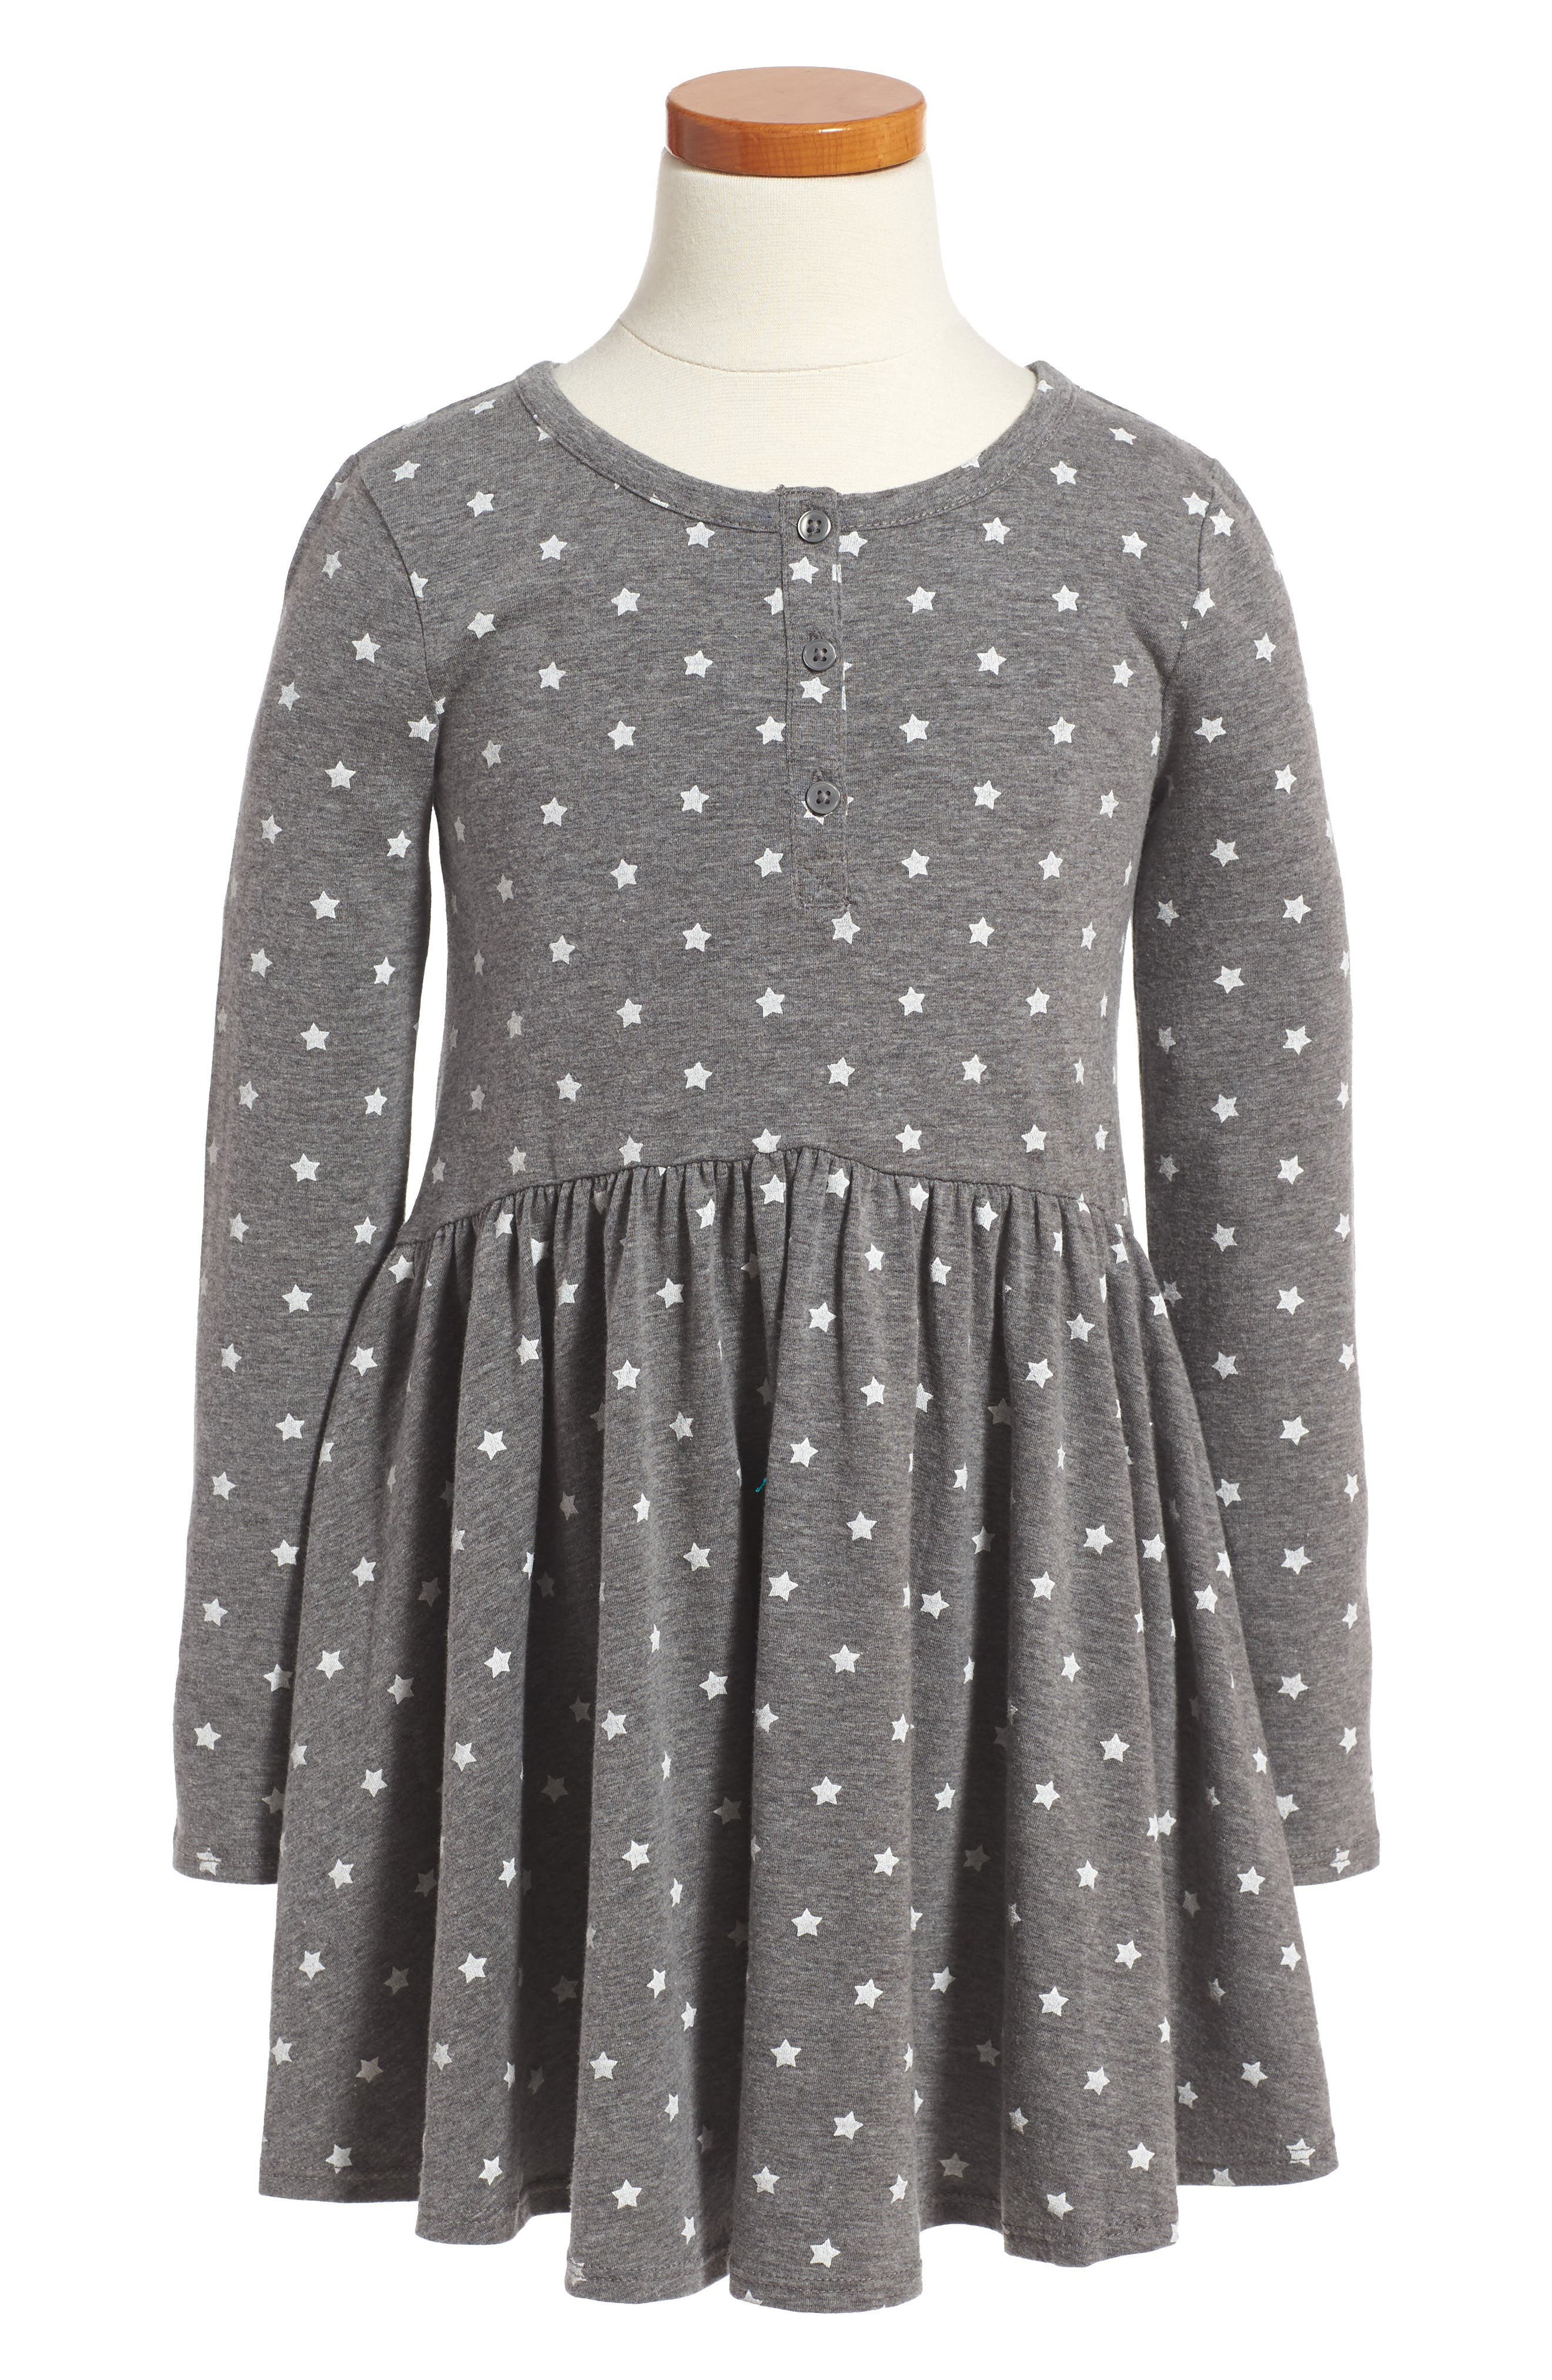 Print Knit Dress,                         Main,                         color, Grey Charcoal Heather Stars